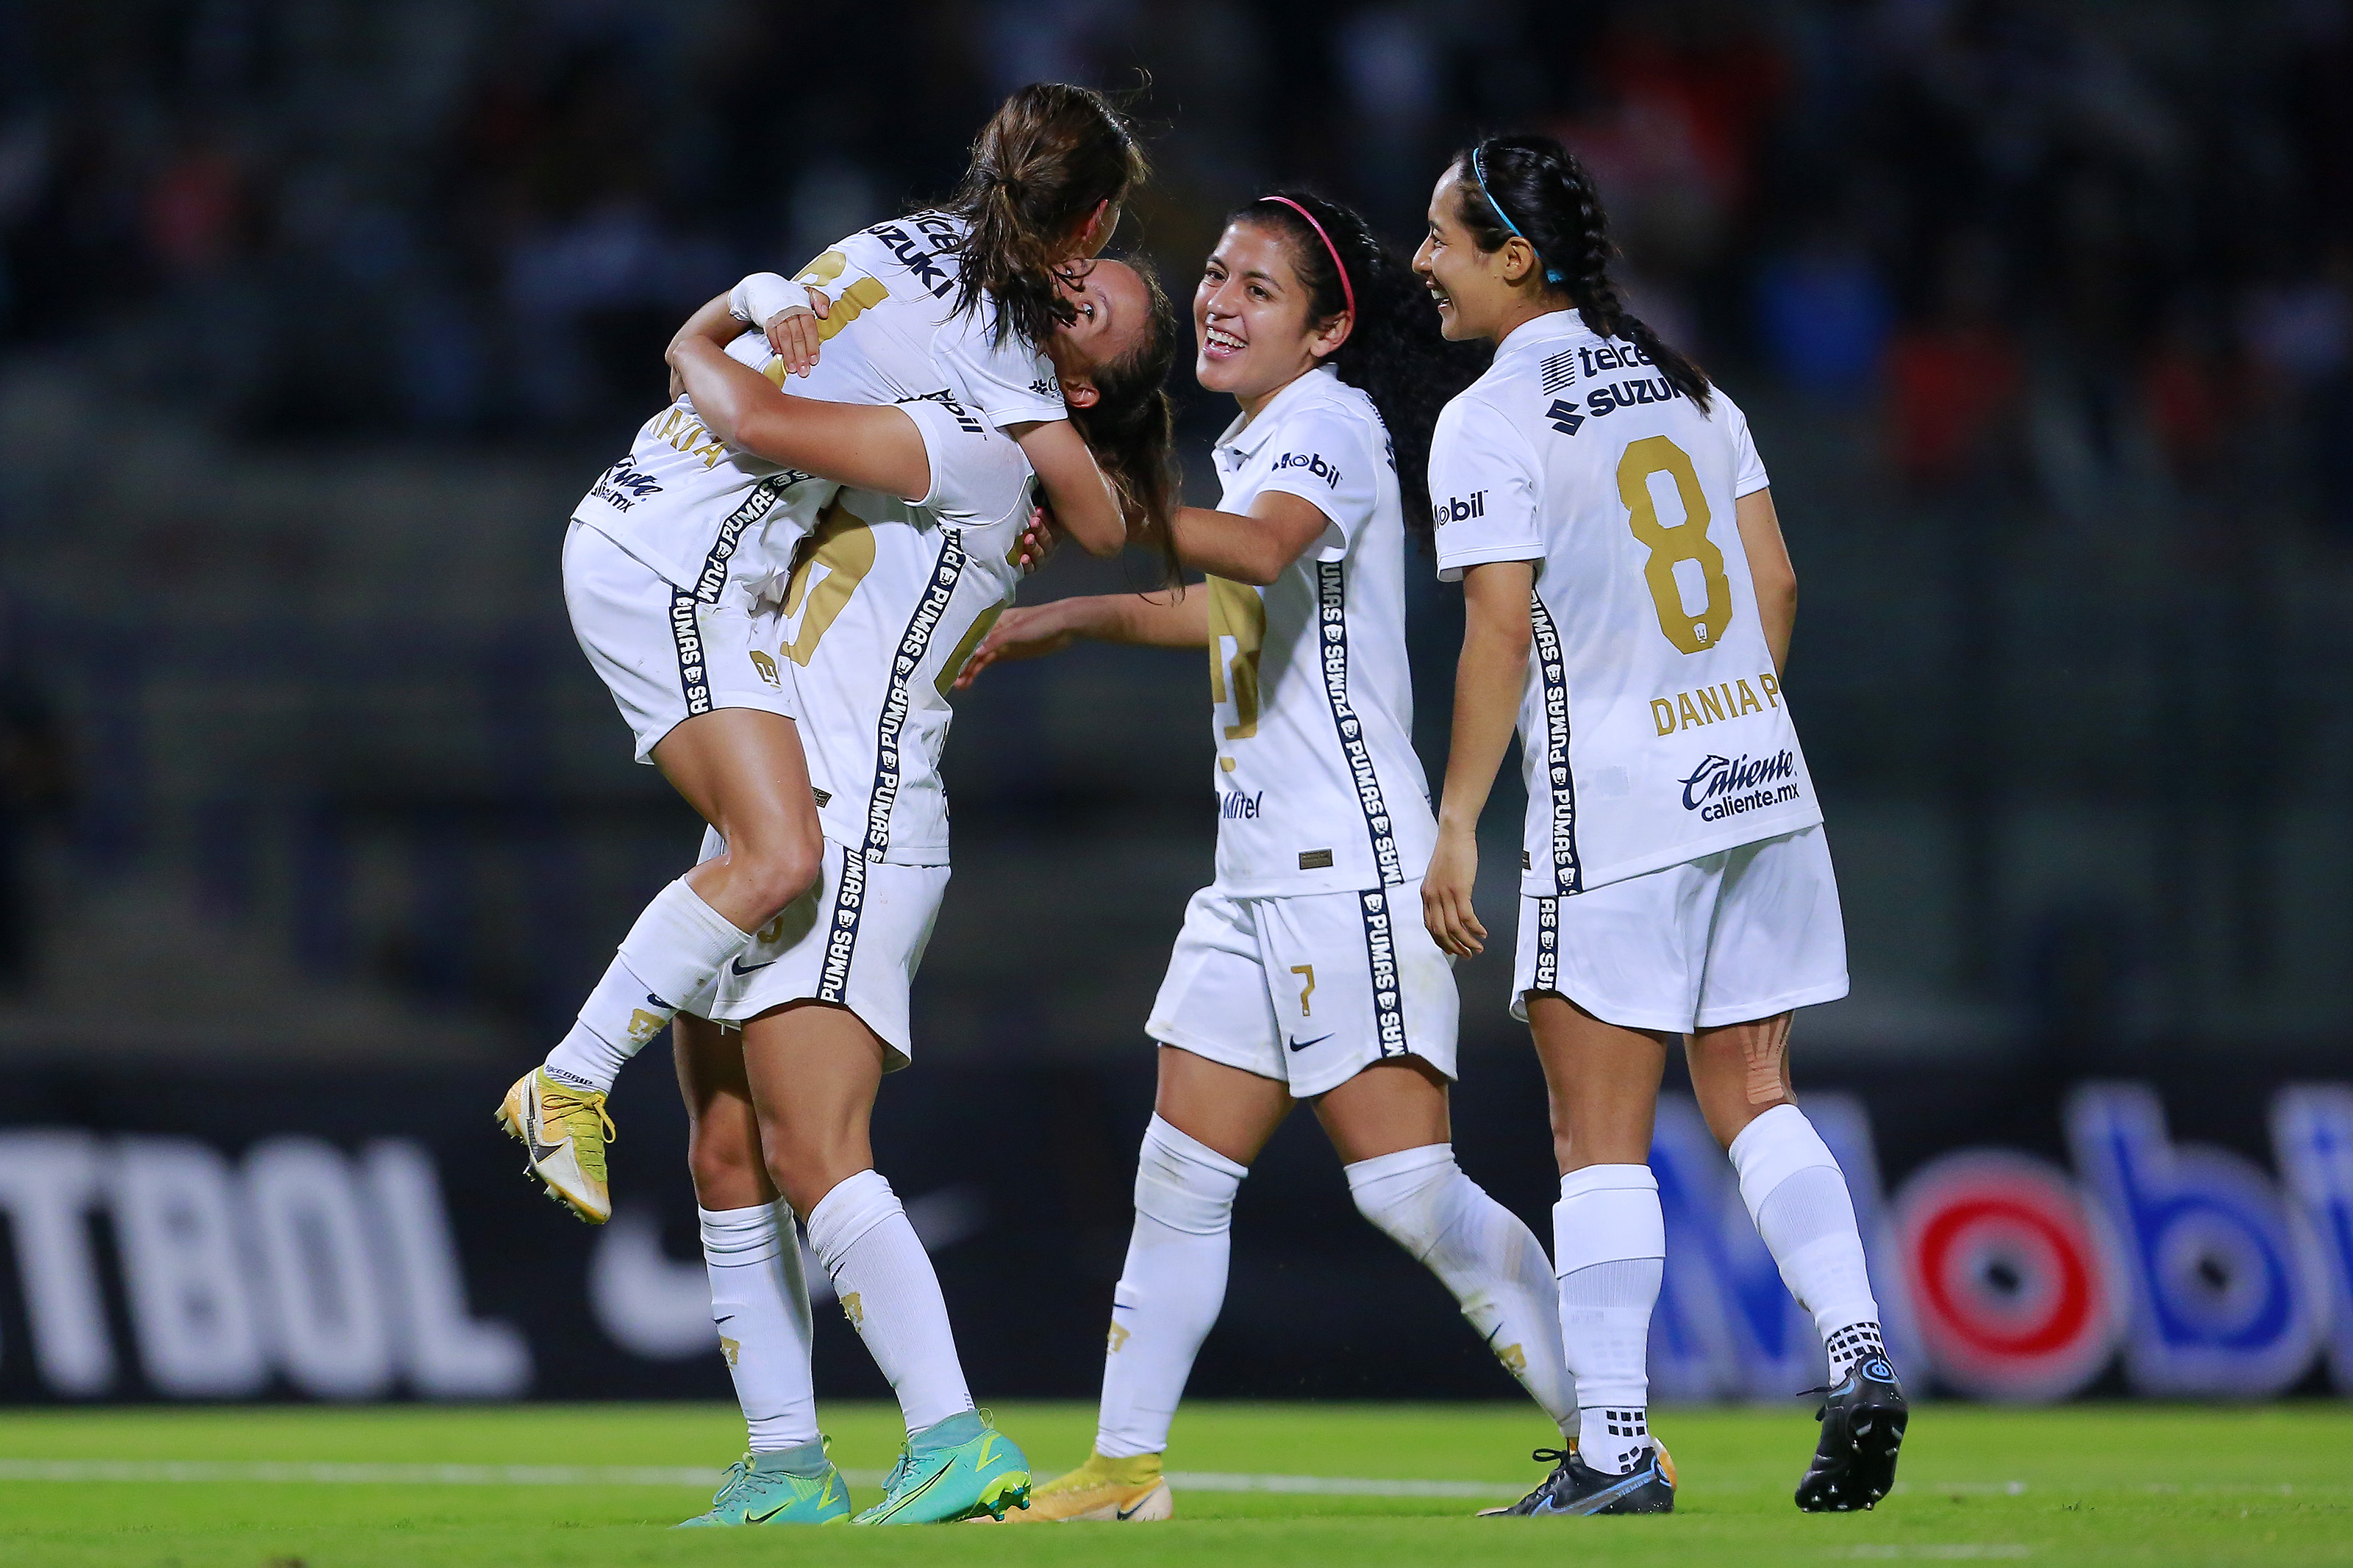 Marilyn Campa of Pumas celebrates with teammates after scoring the third goal of her team during a match between Pumas and Juarez as part of the Torneo Grita Mexico A21 Liga MX Femenil on September 27, 2021 in Mexico City, Mexico.